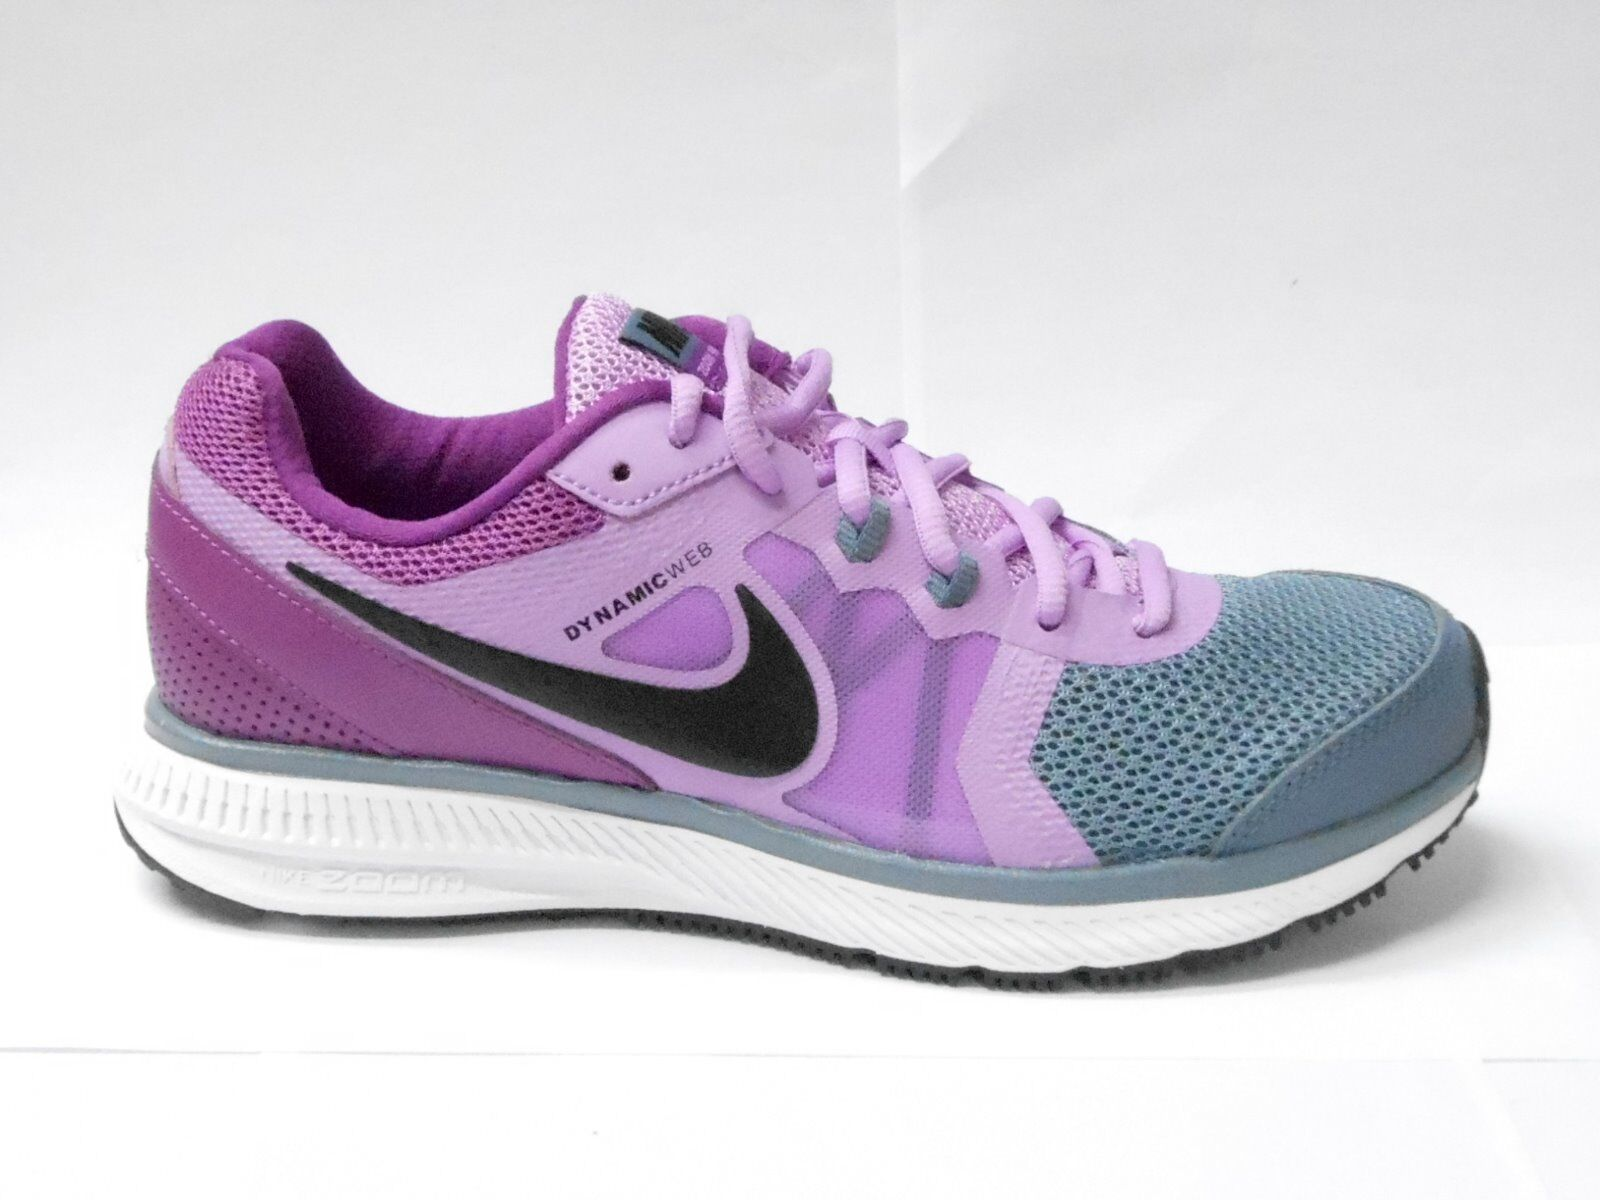 NIKE WOMENS ZOOM WINFLO RUNNING TRAINERS 7 UK SIZE 4 TO 7 TRAINERS GRAPHITE FUCHSIA SHOES 0d307d